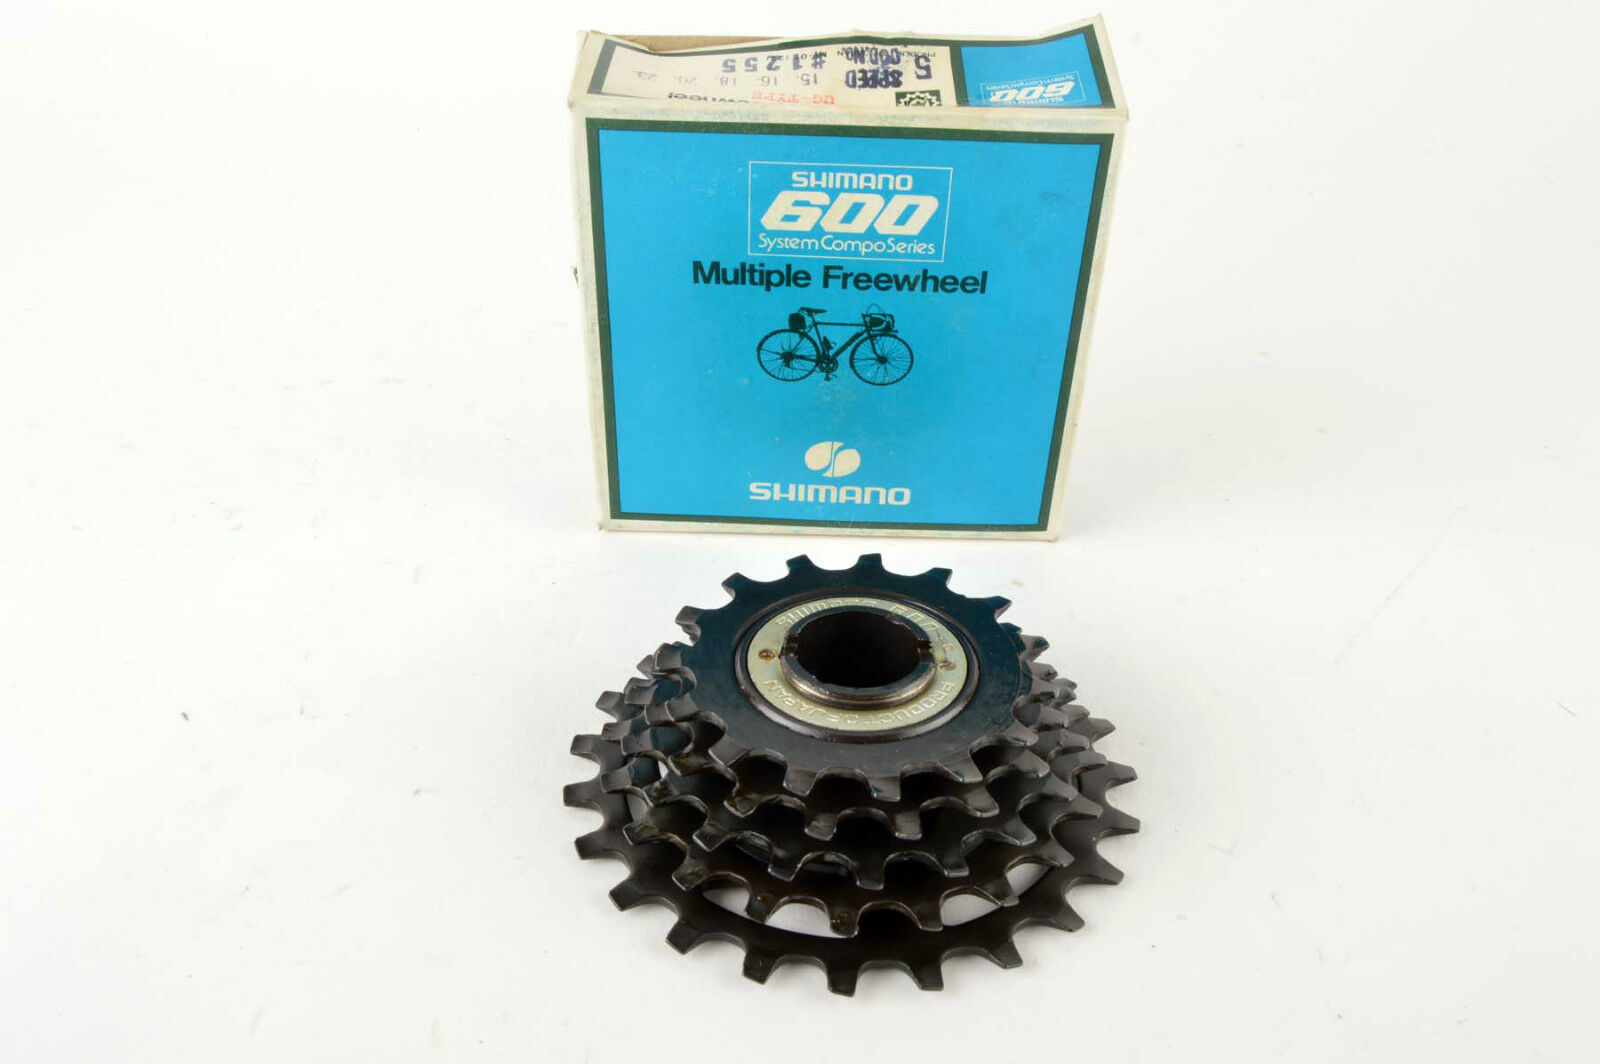 NEW Shimano 600 5-speed UG freewheel, 15-23, from the 1980s NOS NIB